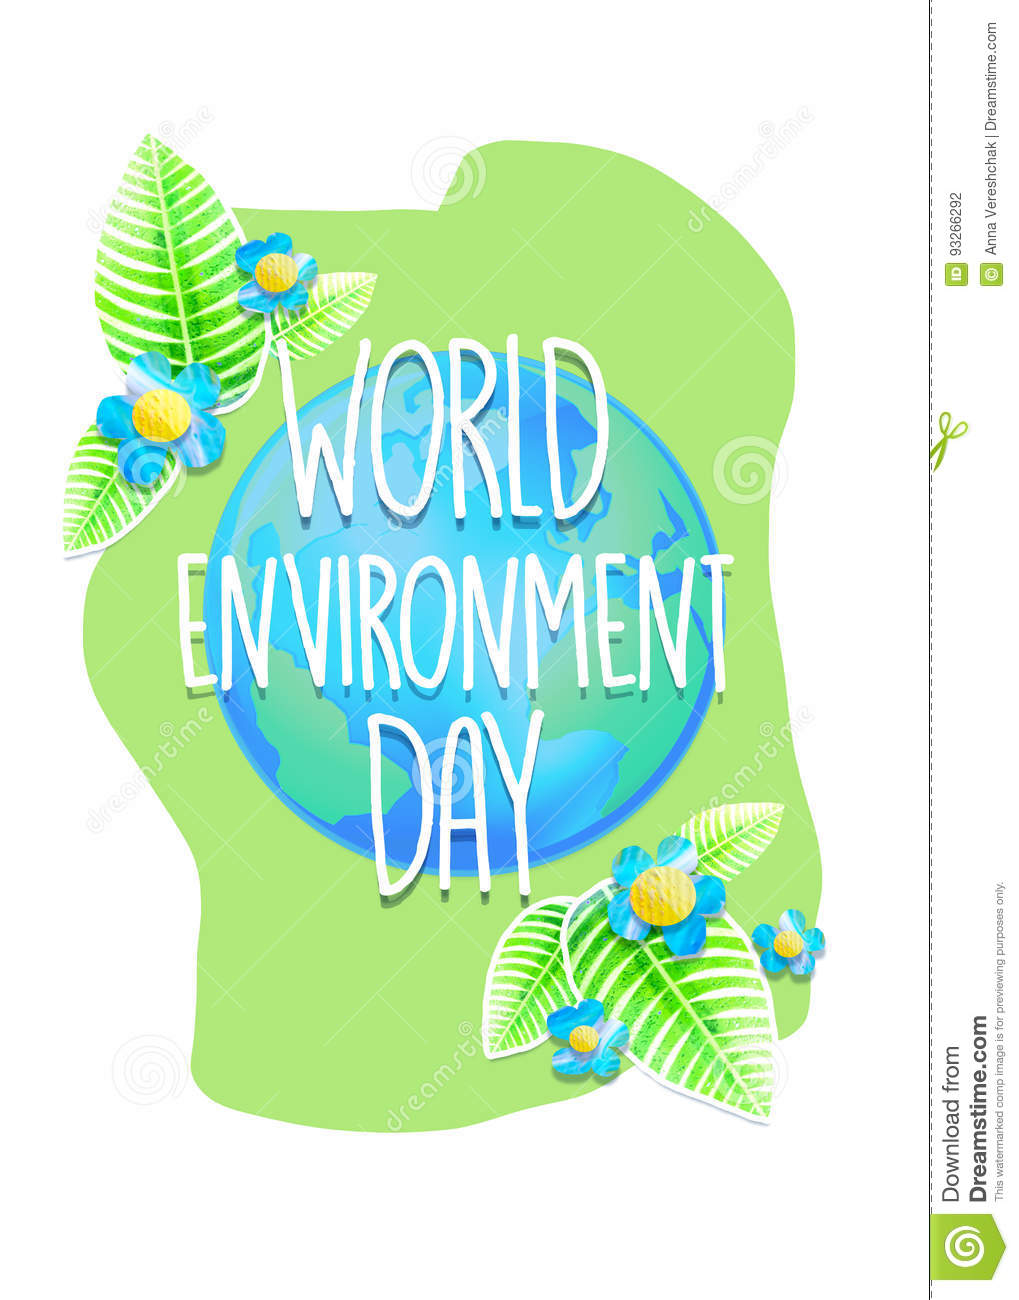 Poster design environment day - Creative Poster Or Banner Of World Environment Day Ecology Protection Holiday Greeting Card Concept